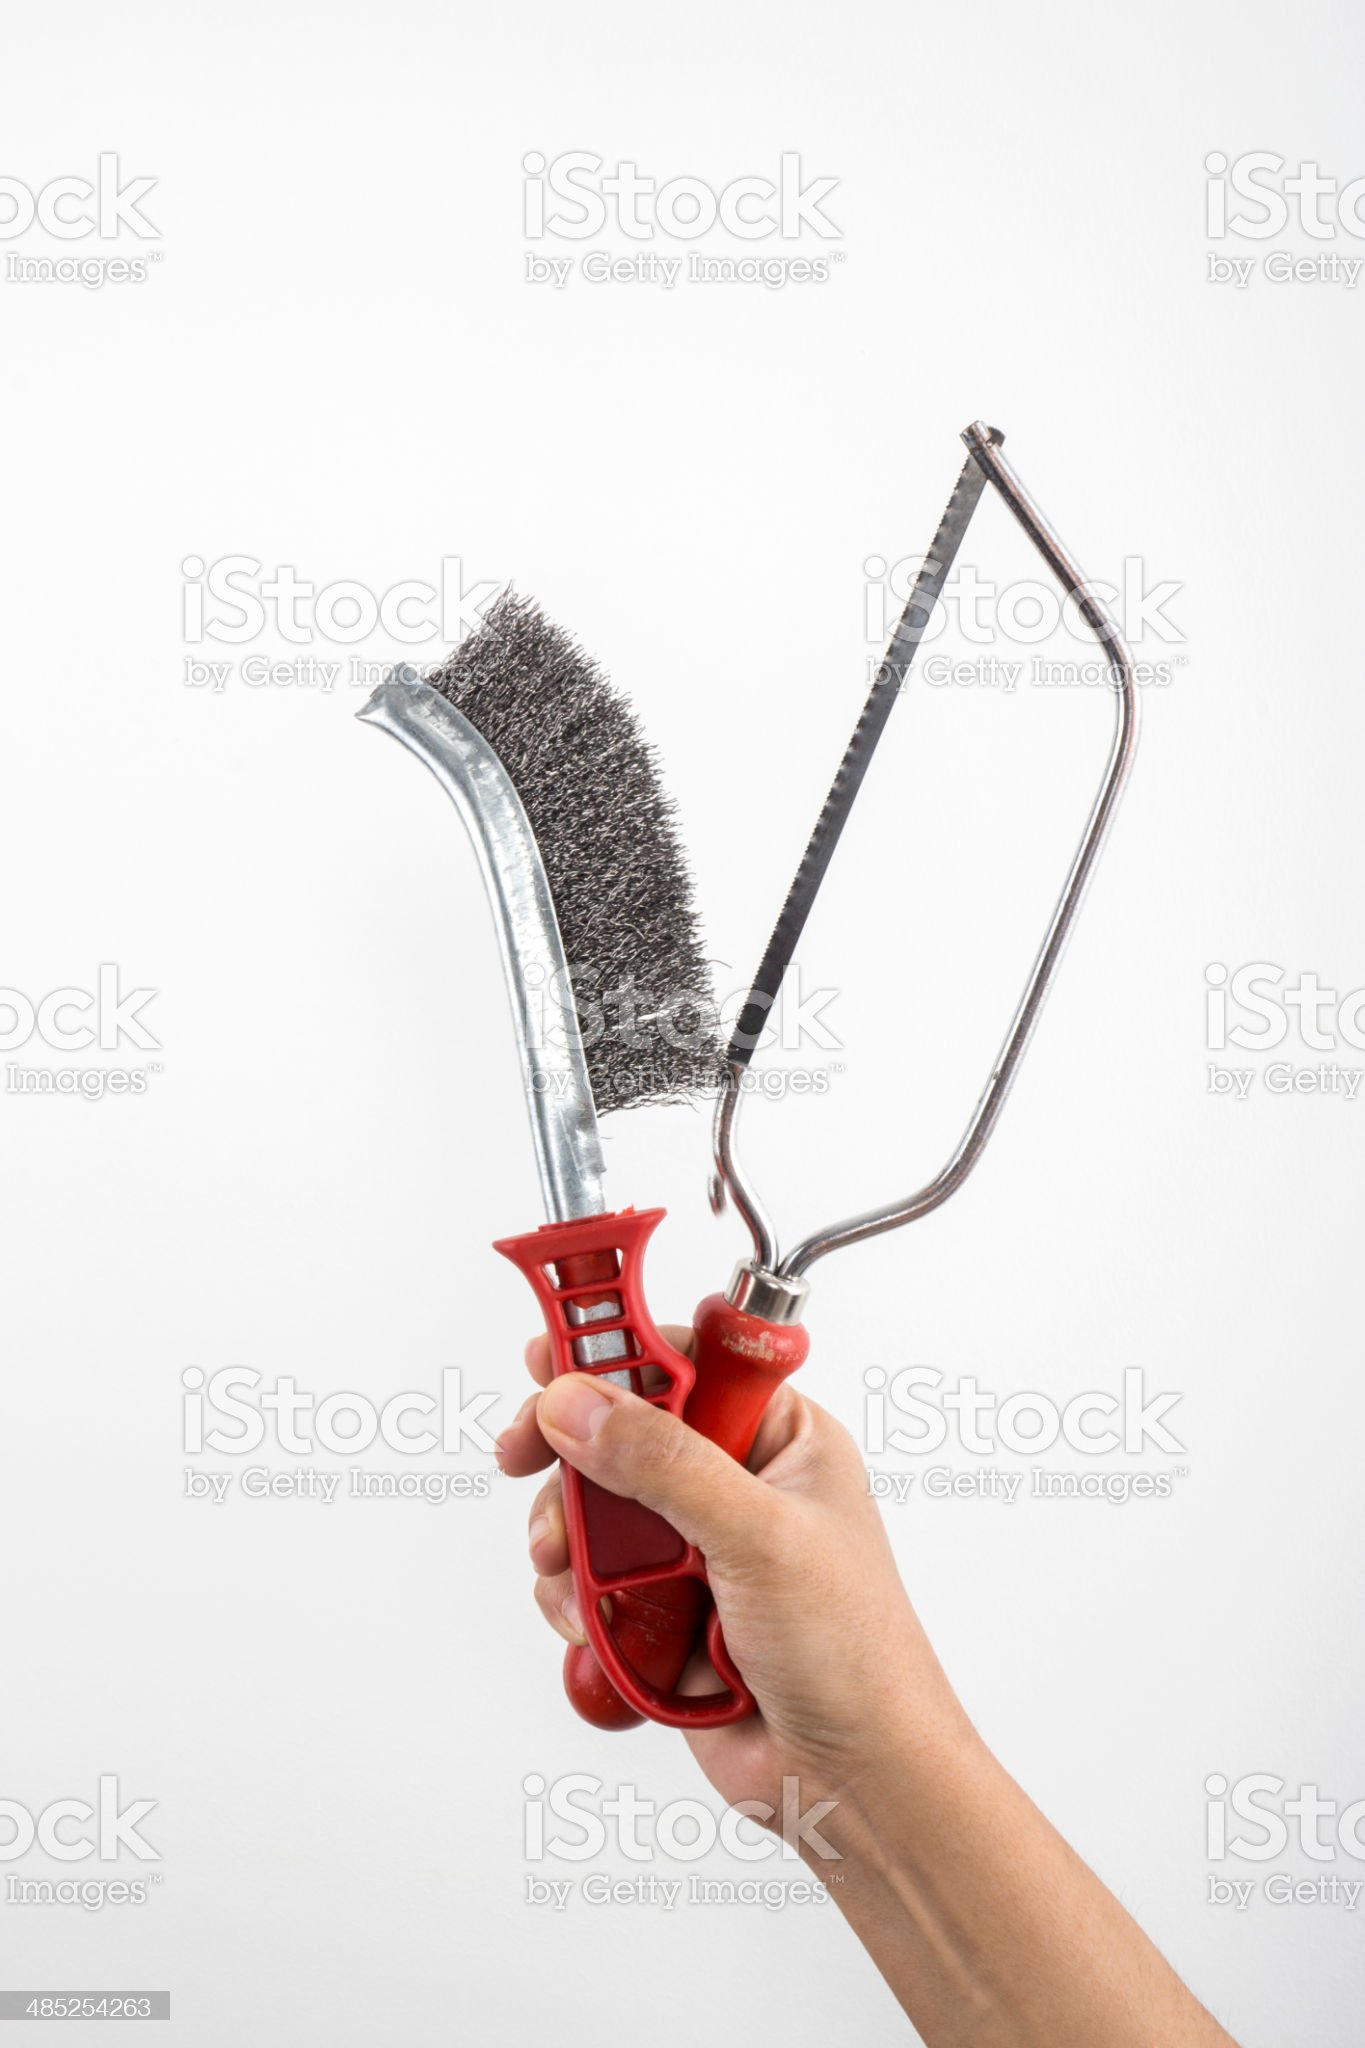 Tools in Hand royalty-free stock photo